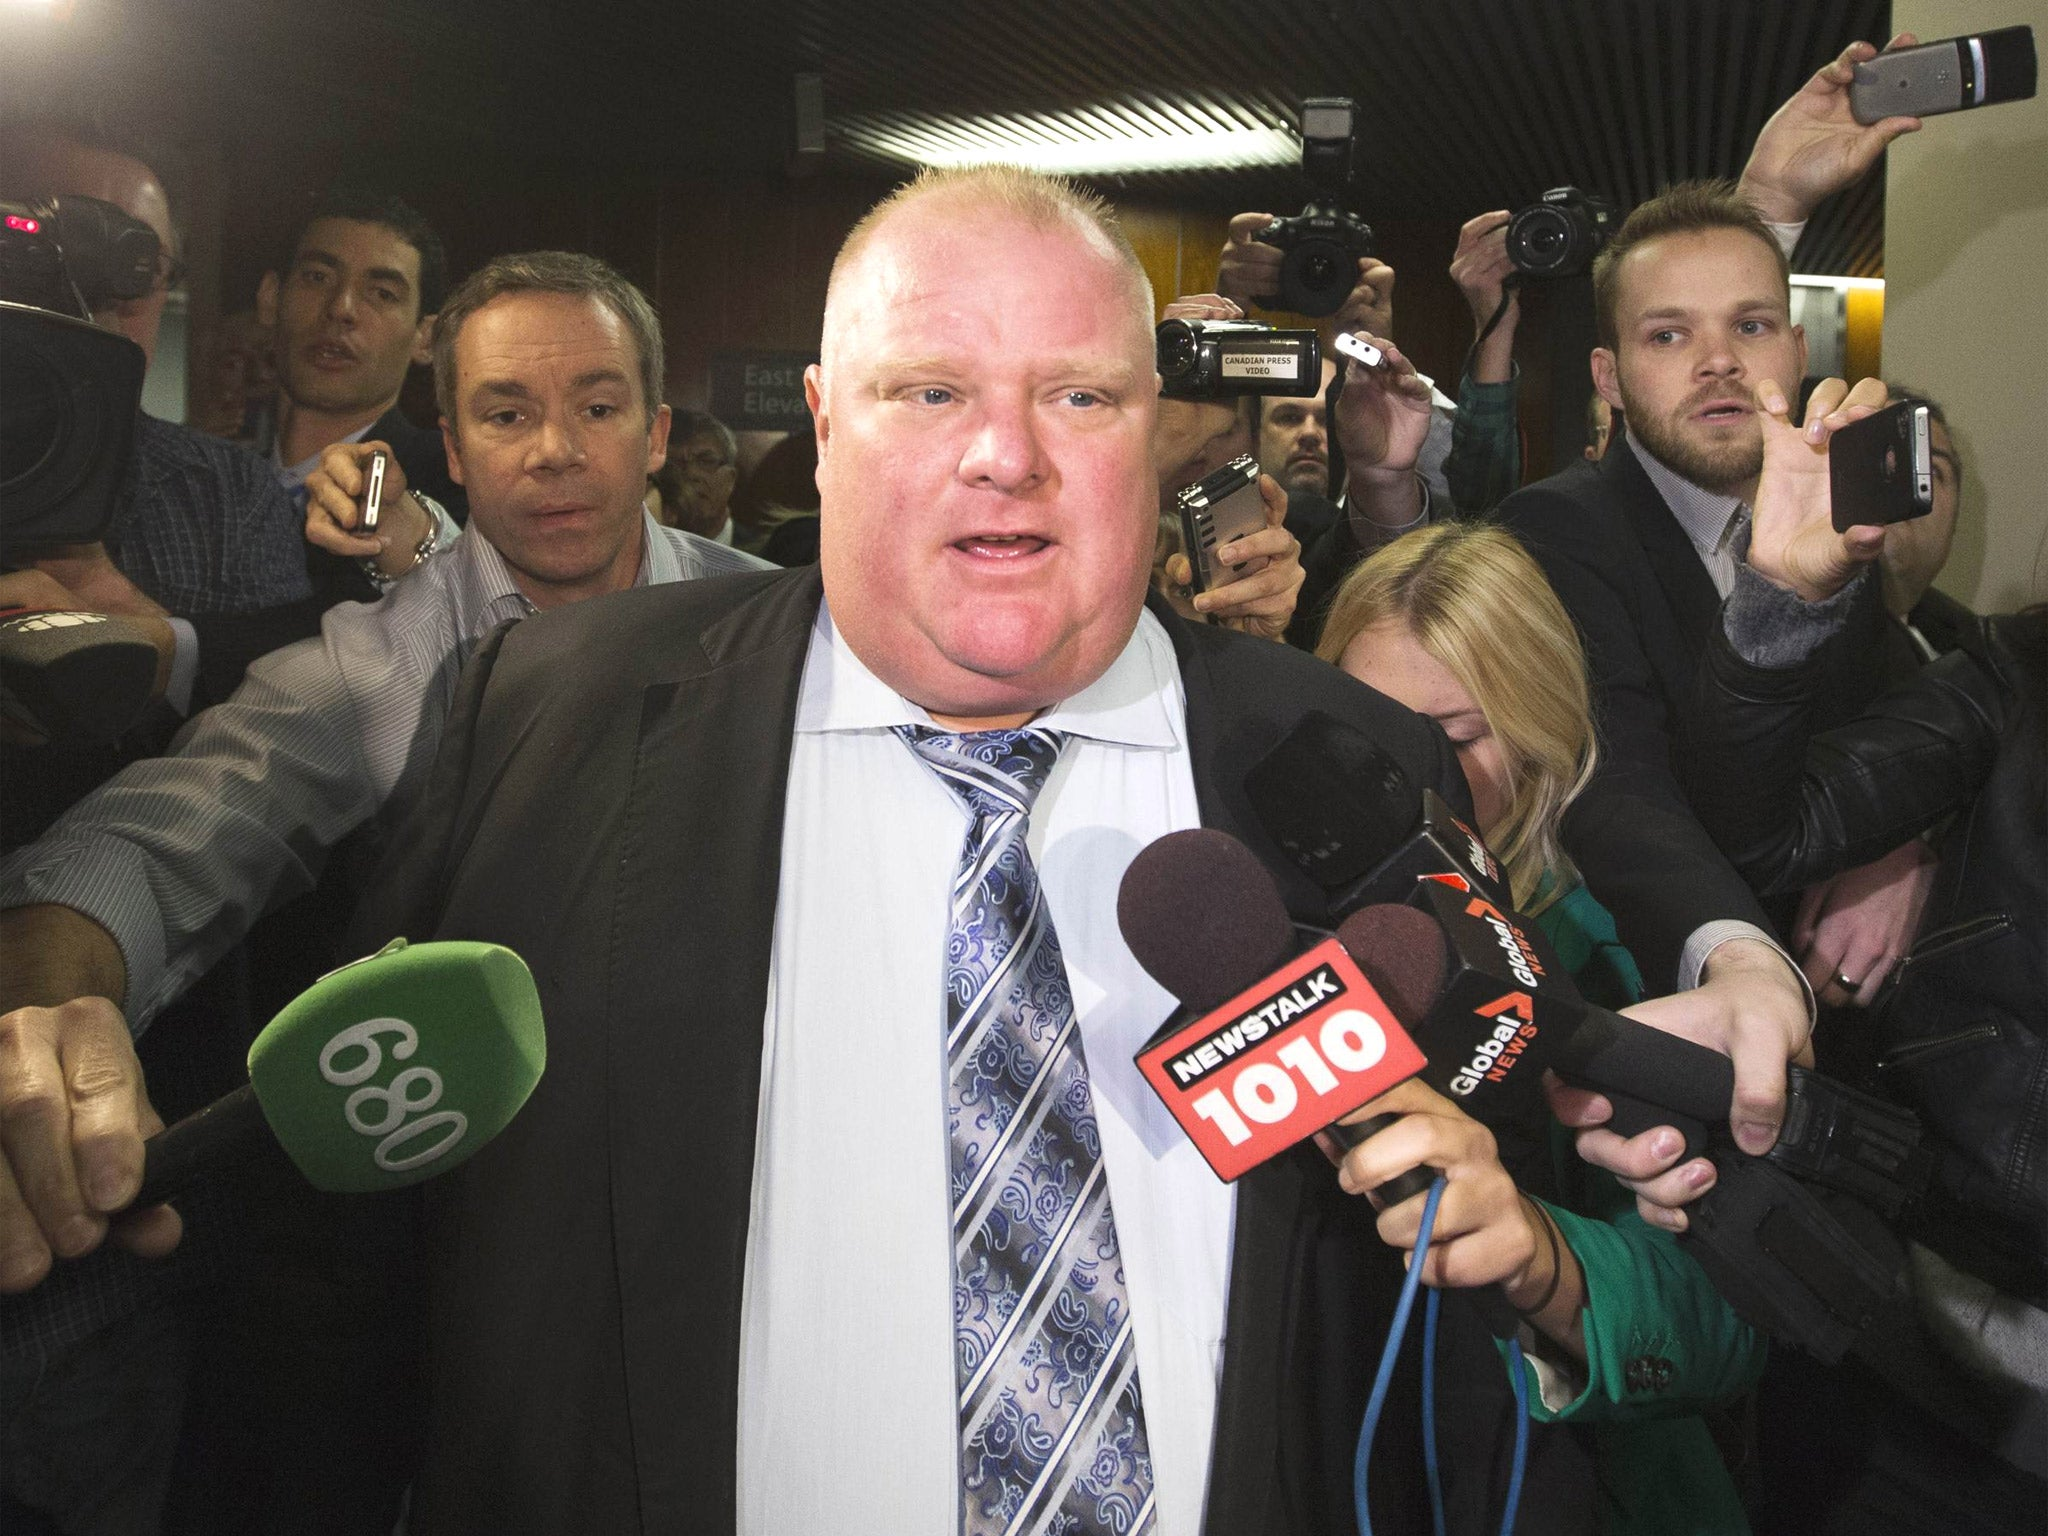 Toronto mayor Rob Ford has higher approval rating than Cameron and Obama despite crack smoking